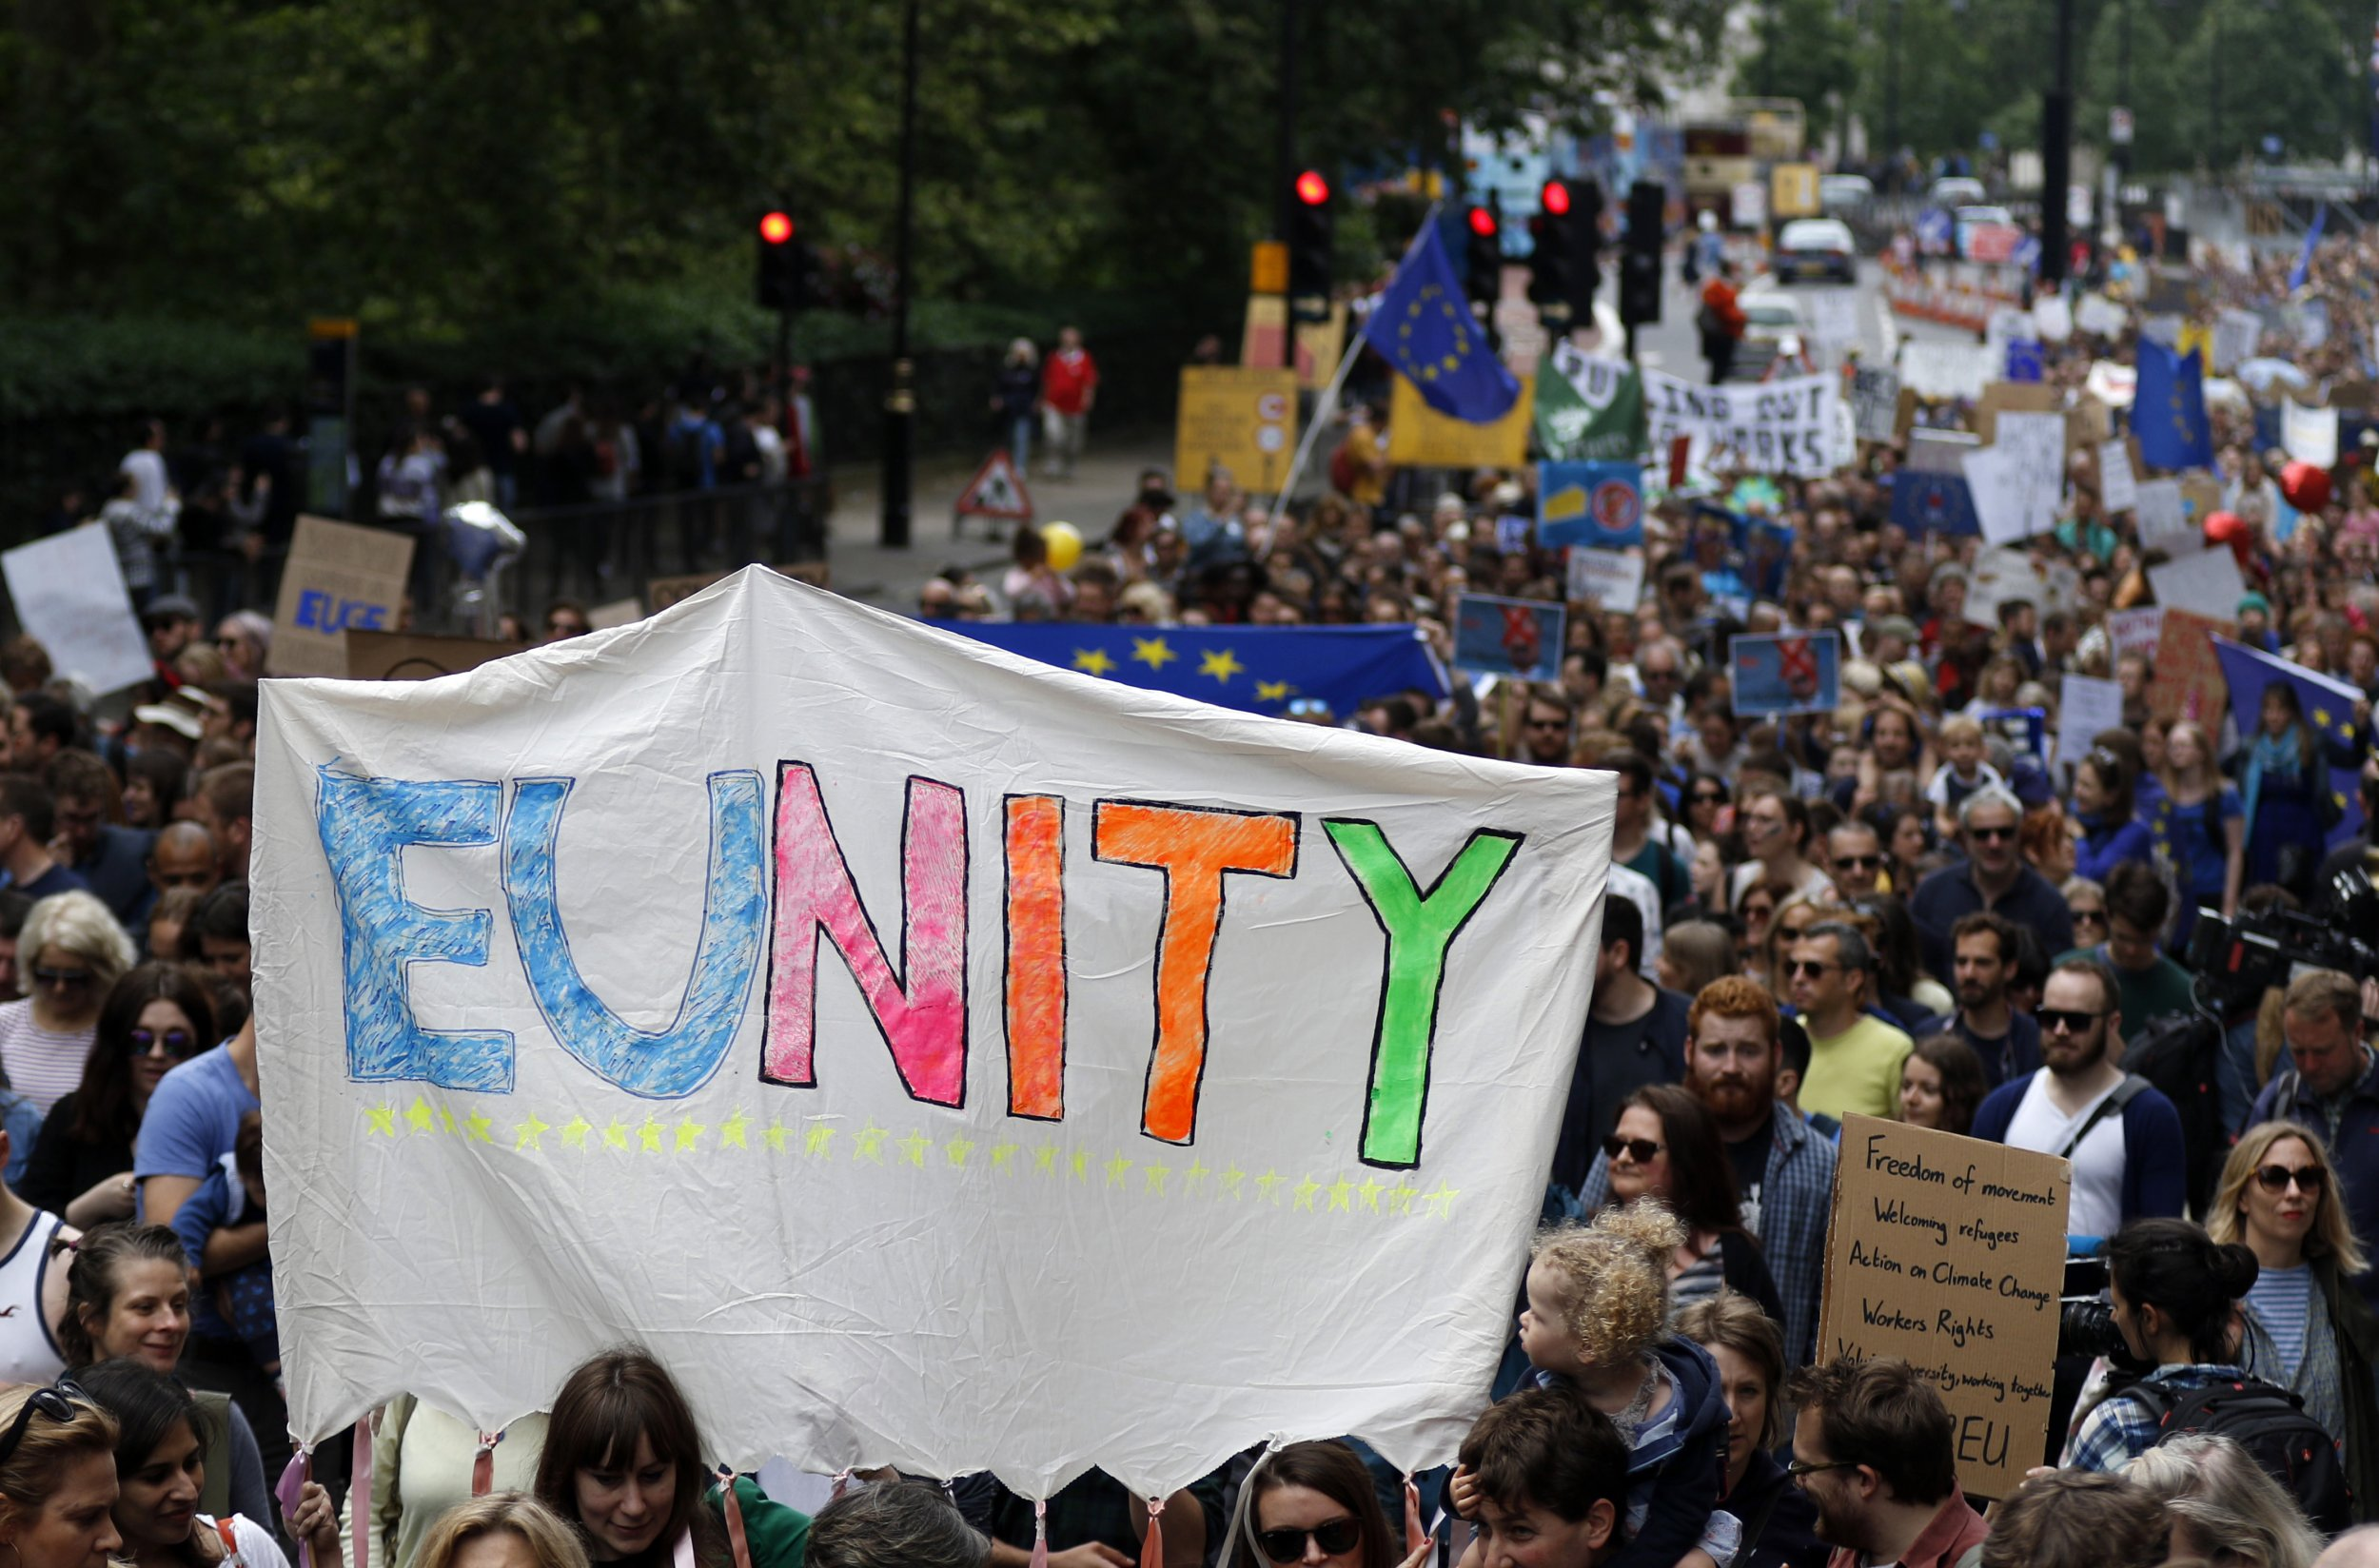 'March for Europe' demonstration